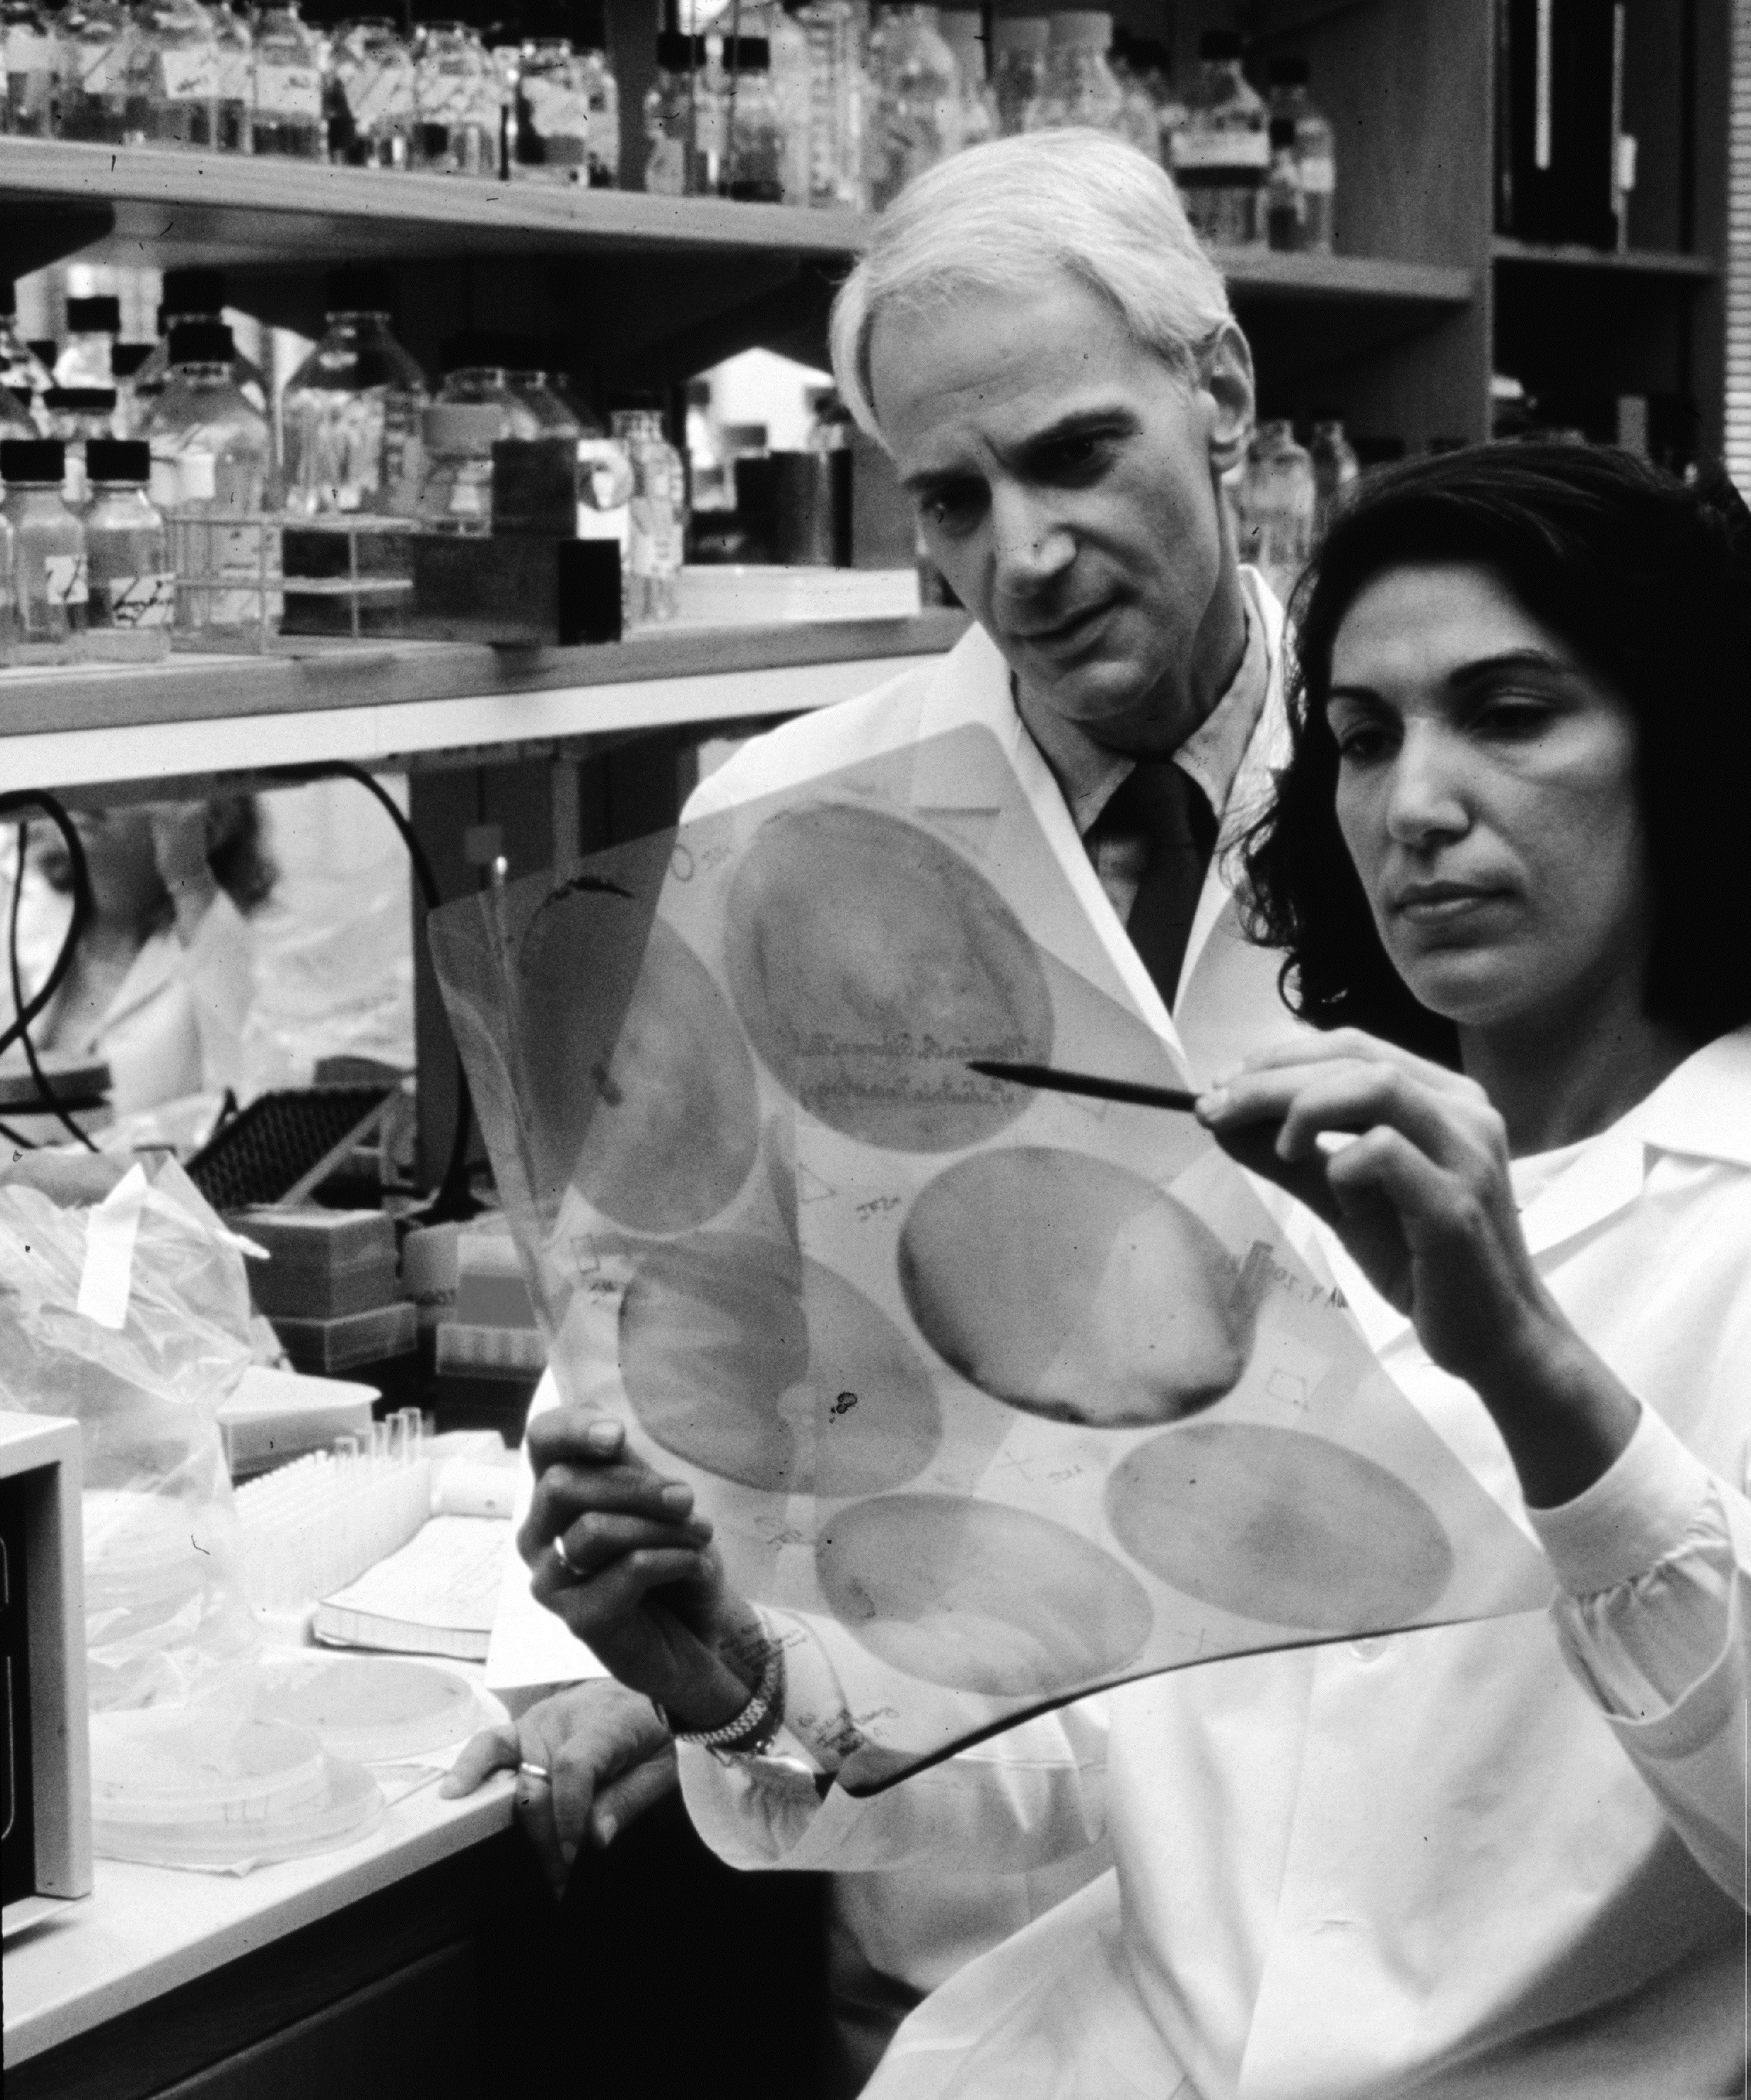 Dr. Marvin Fishman with Dr. Huda Zoghbi in her lab. In 1999, Dr. Huda Zoghbi identified the defective gene, MECP2, that causes Rett Syndrome.